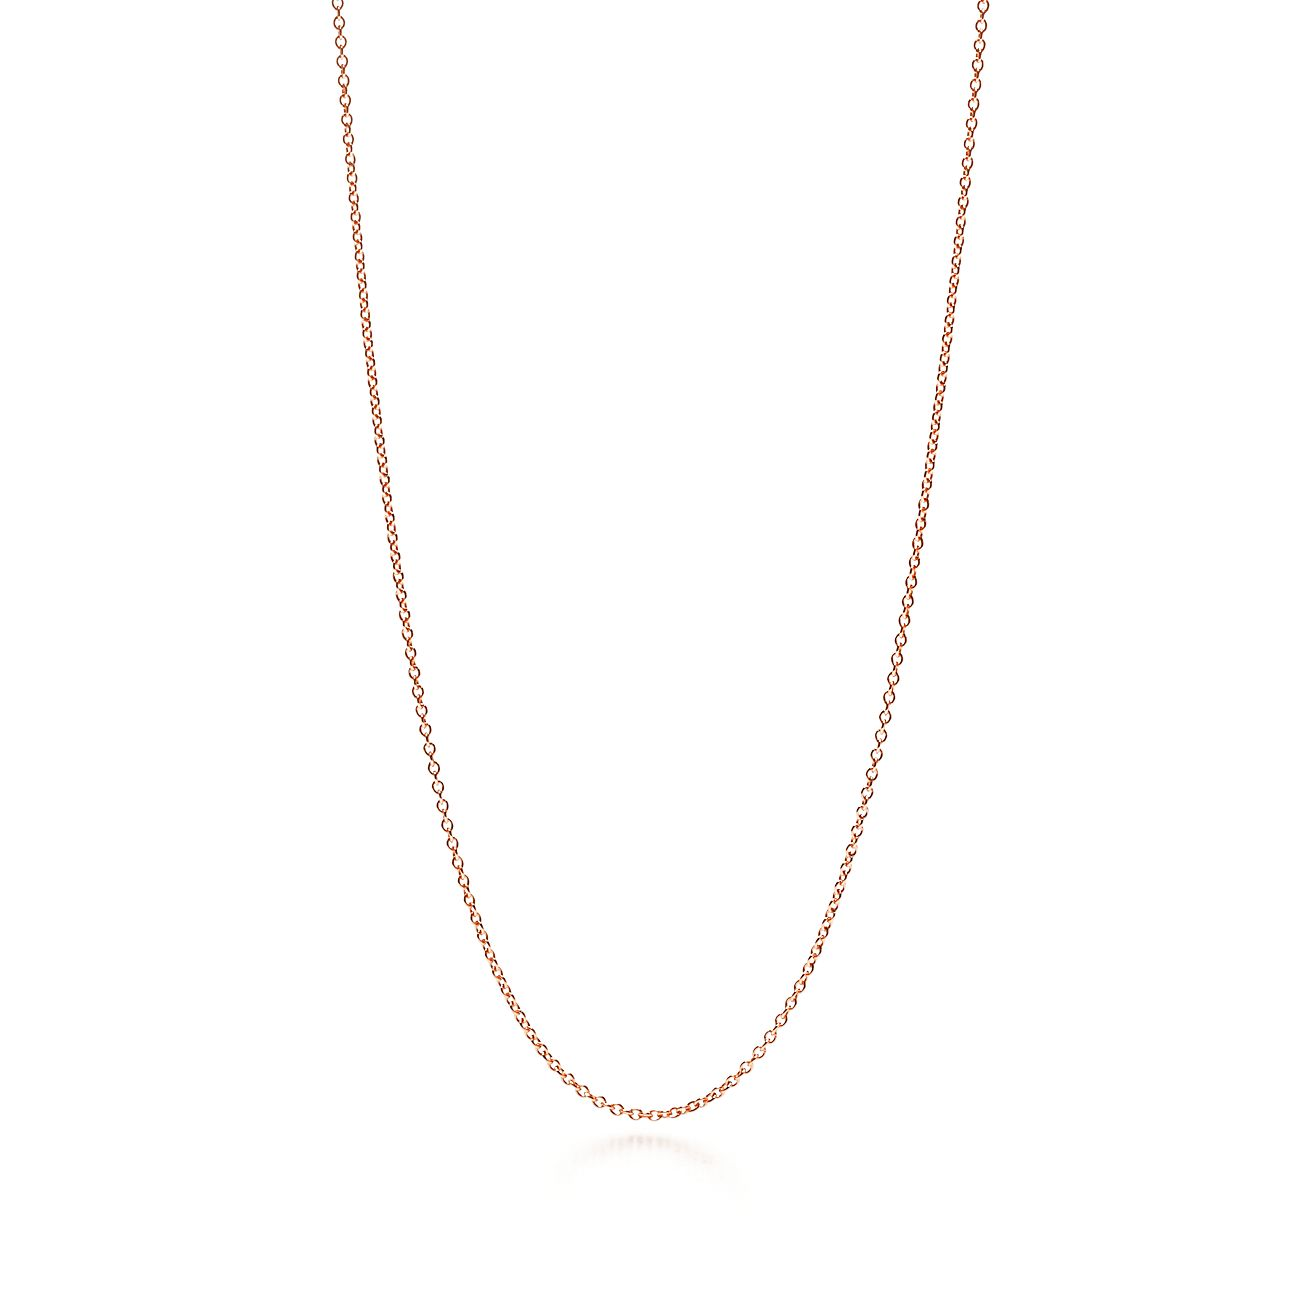 Chain gold necklace photo